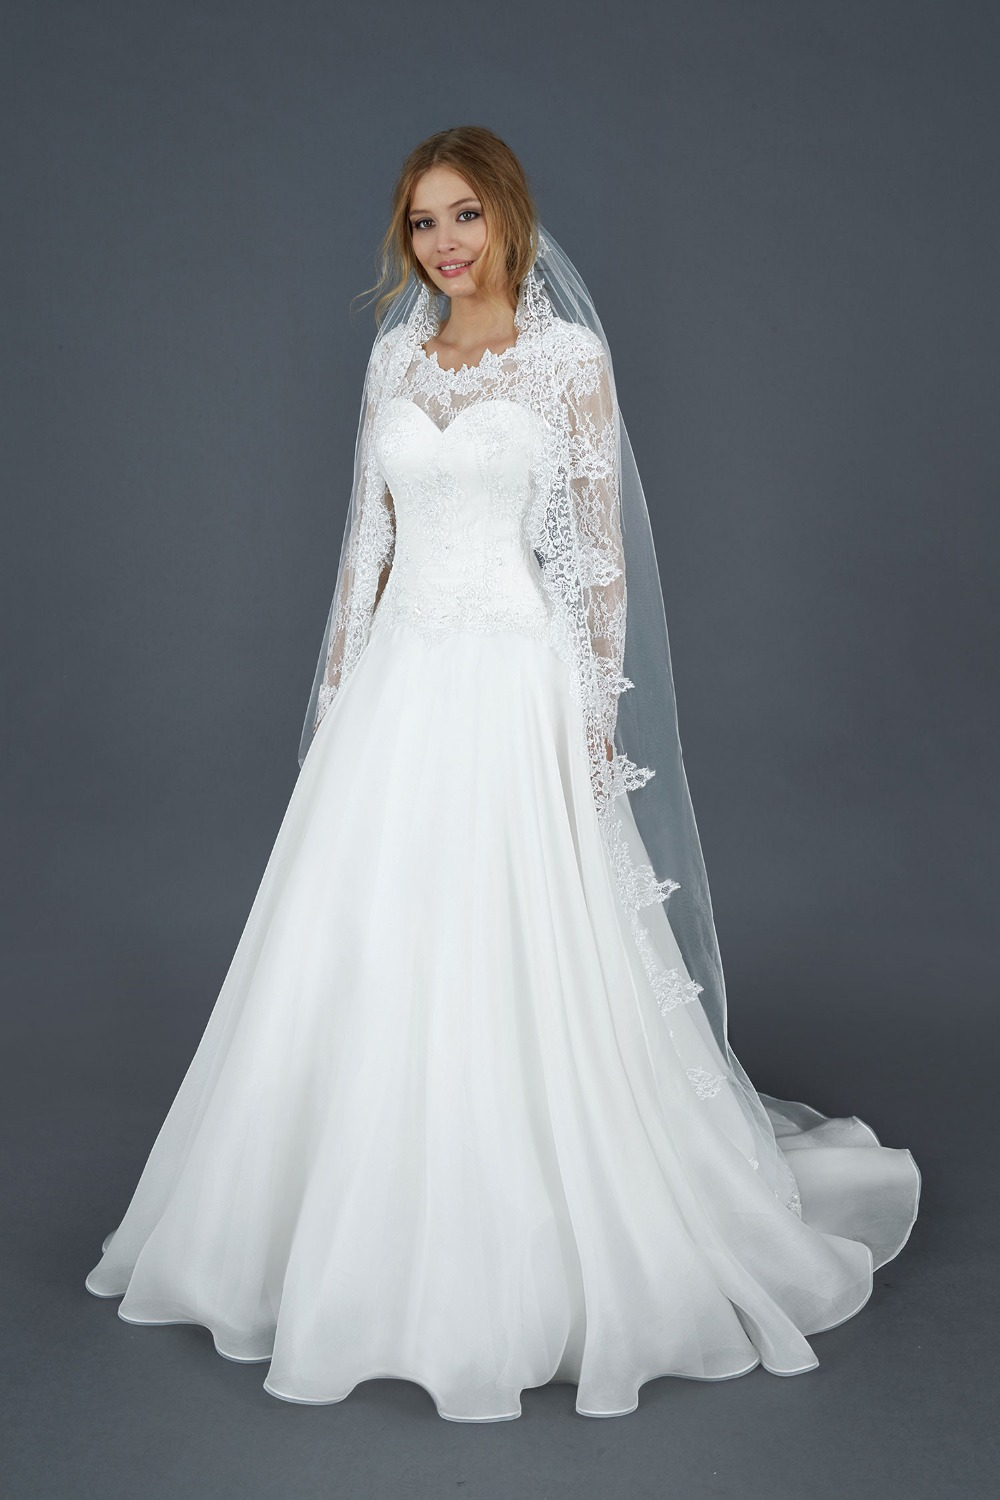 New Arrival Custom Made 2016 Lace Applique Organza Tulle Long Sleeves Ball Gown Formal Church Wedding Dresses Bridal Gown(China (Mainland))